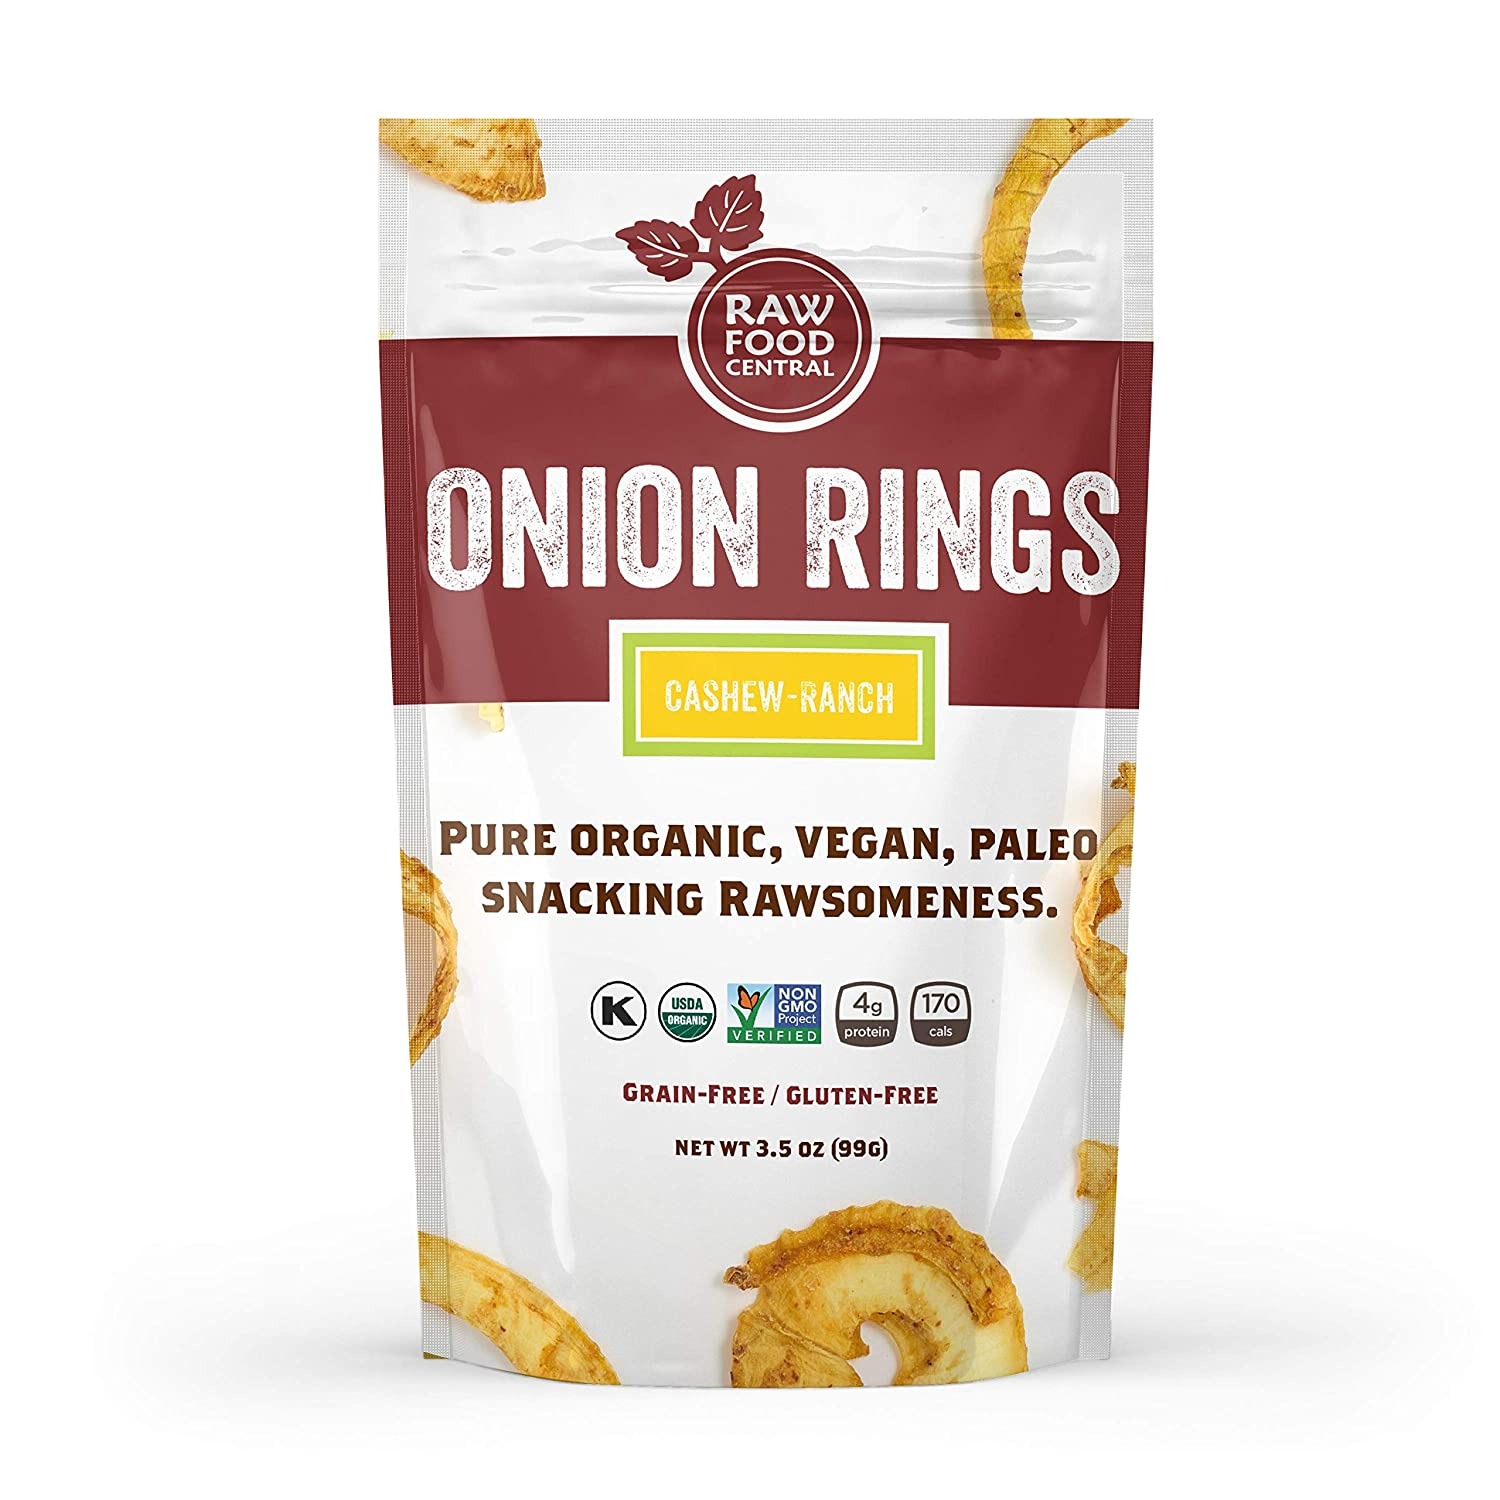 Raw Food Central Curt's Classic Onion Rings 100% Organic NON GMO Gluten Free Vegan (1.5 oz. ) 43 g.